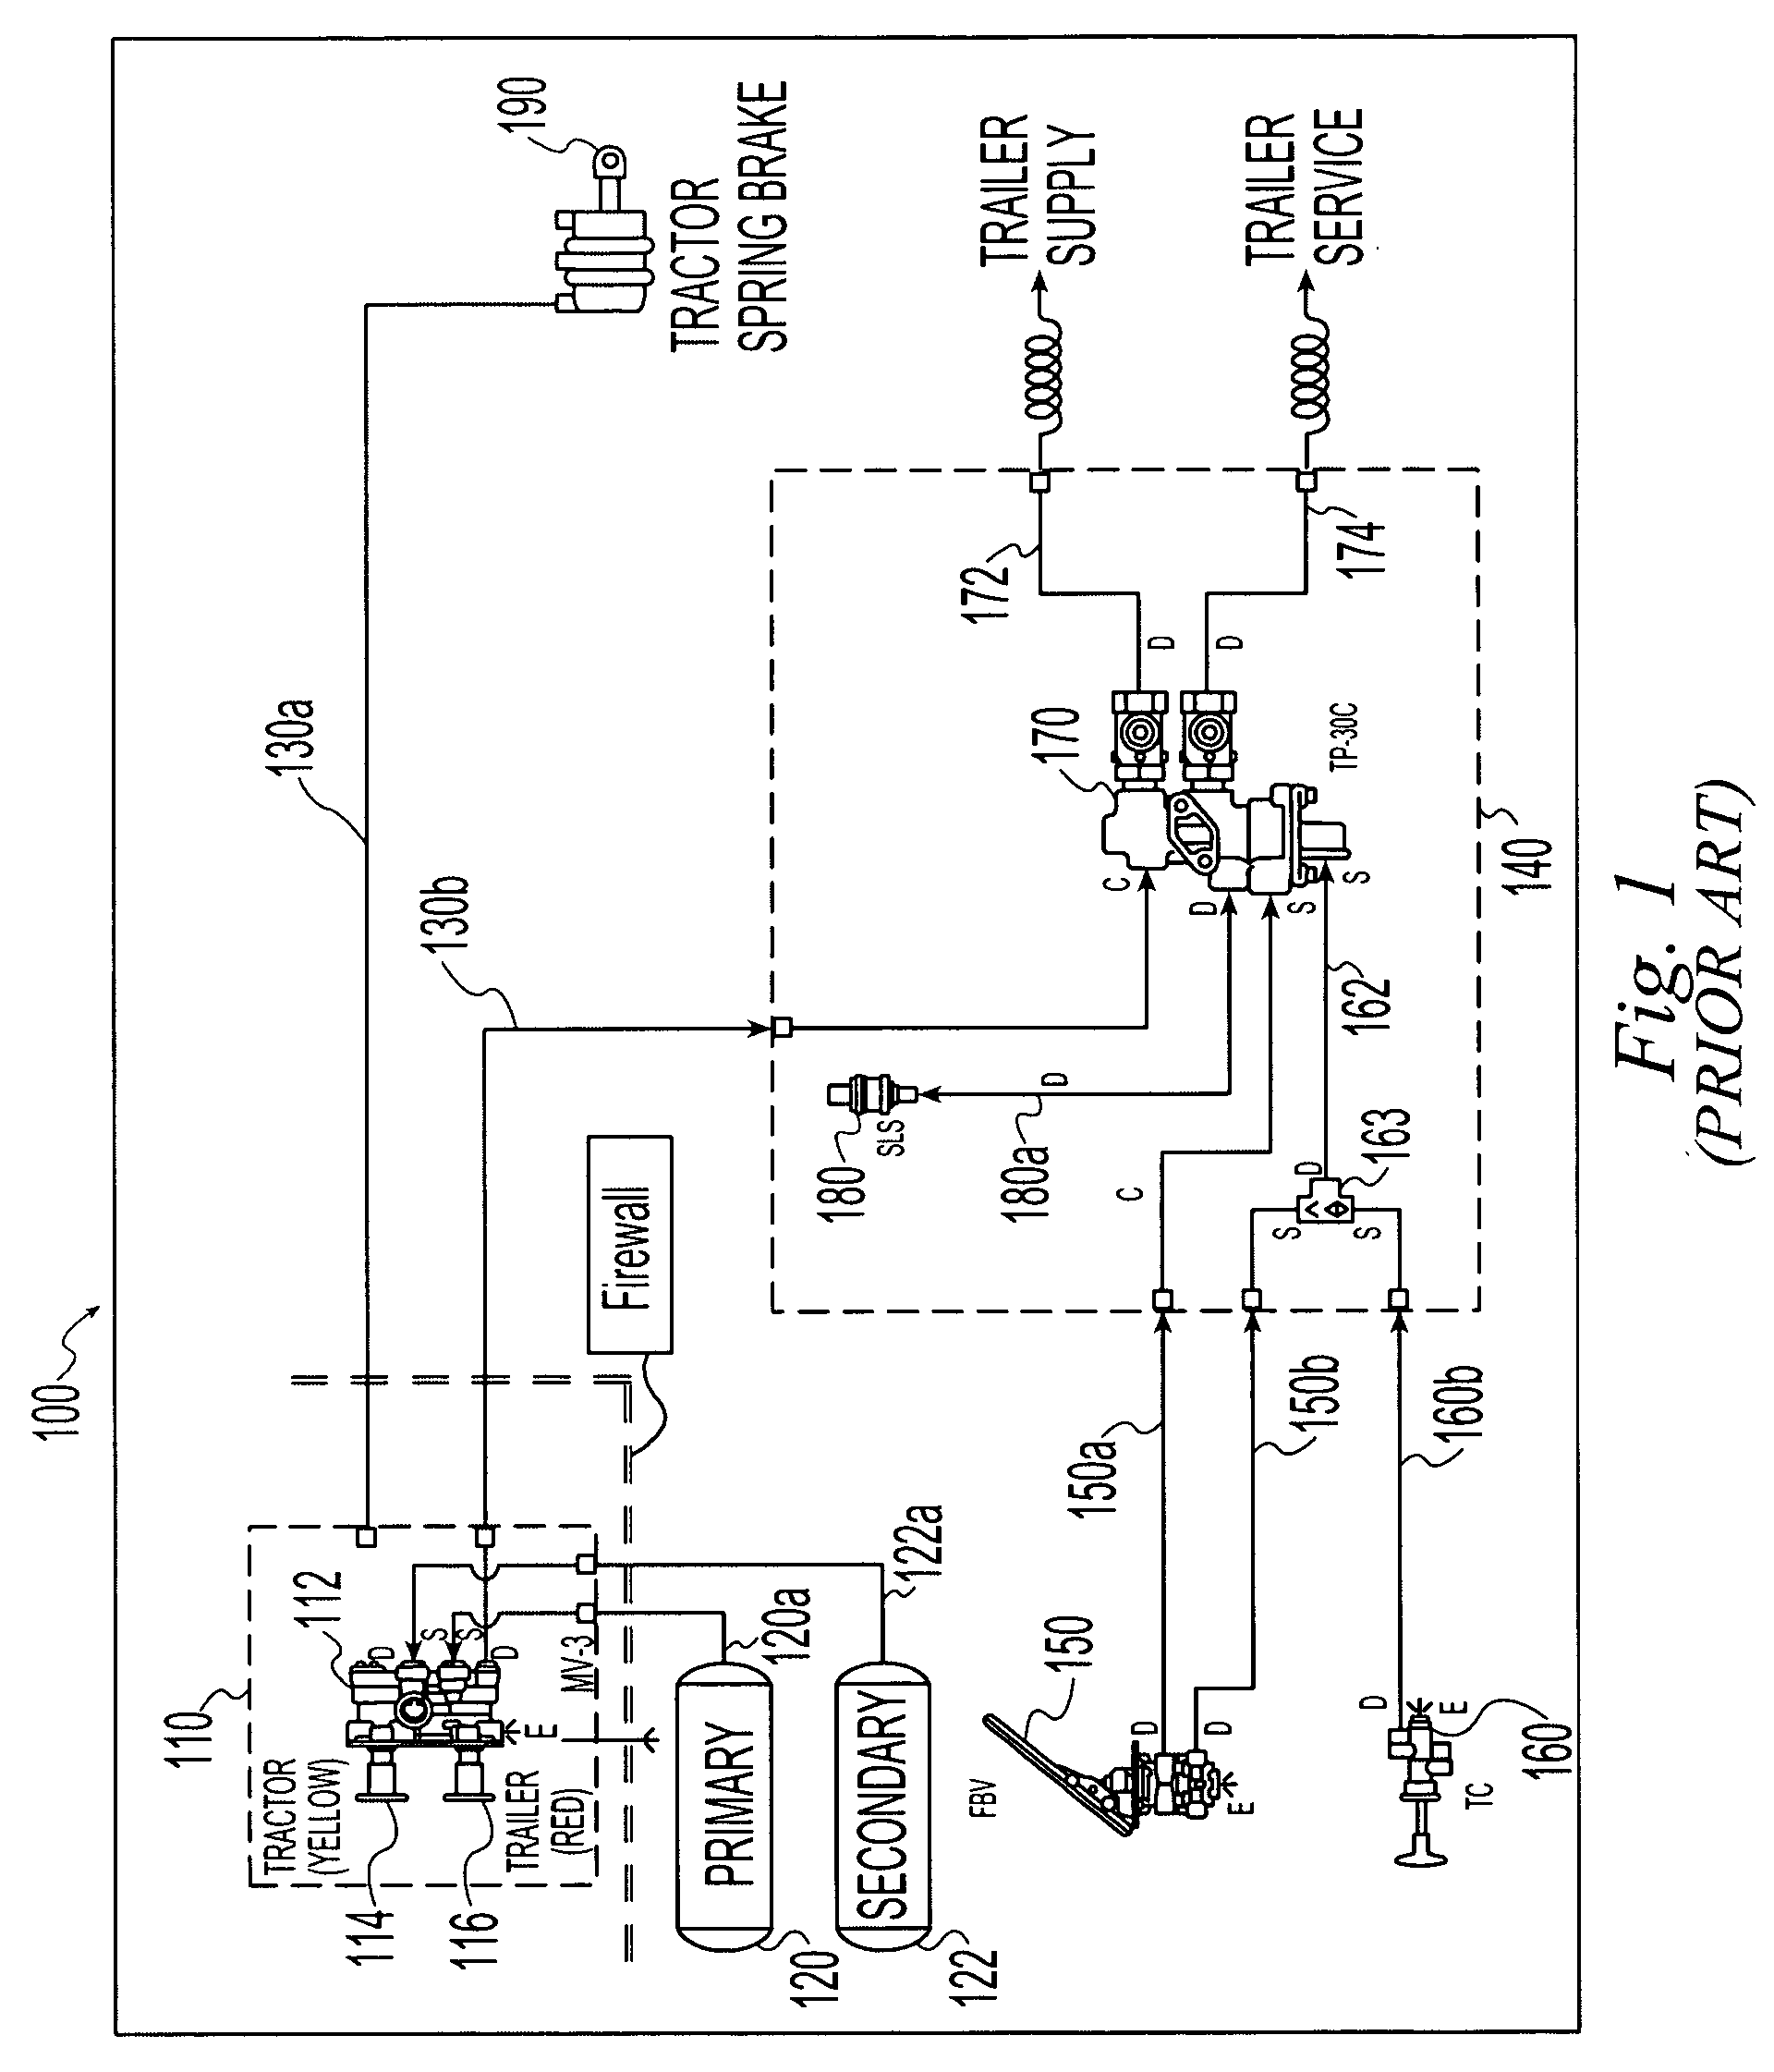 US20040187674A1 20040930 D00001?resize=840%2C981 wabco abs wiring diagram 97 fl70 fuse box diagram, solenoid wabco abs wiring diagram trailer at crackthecode.co